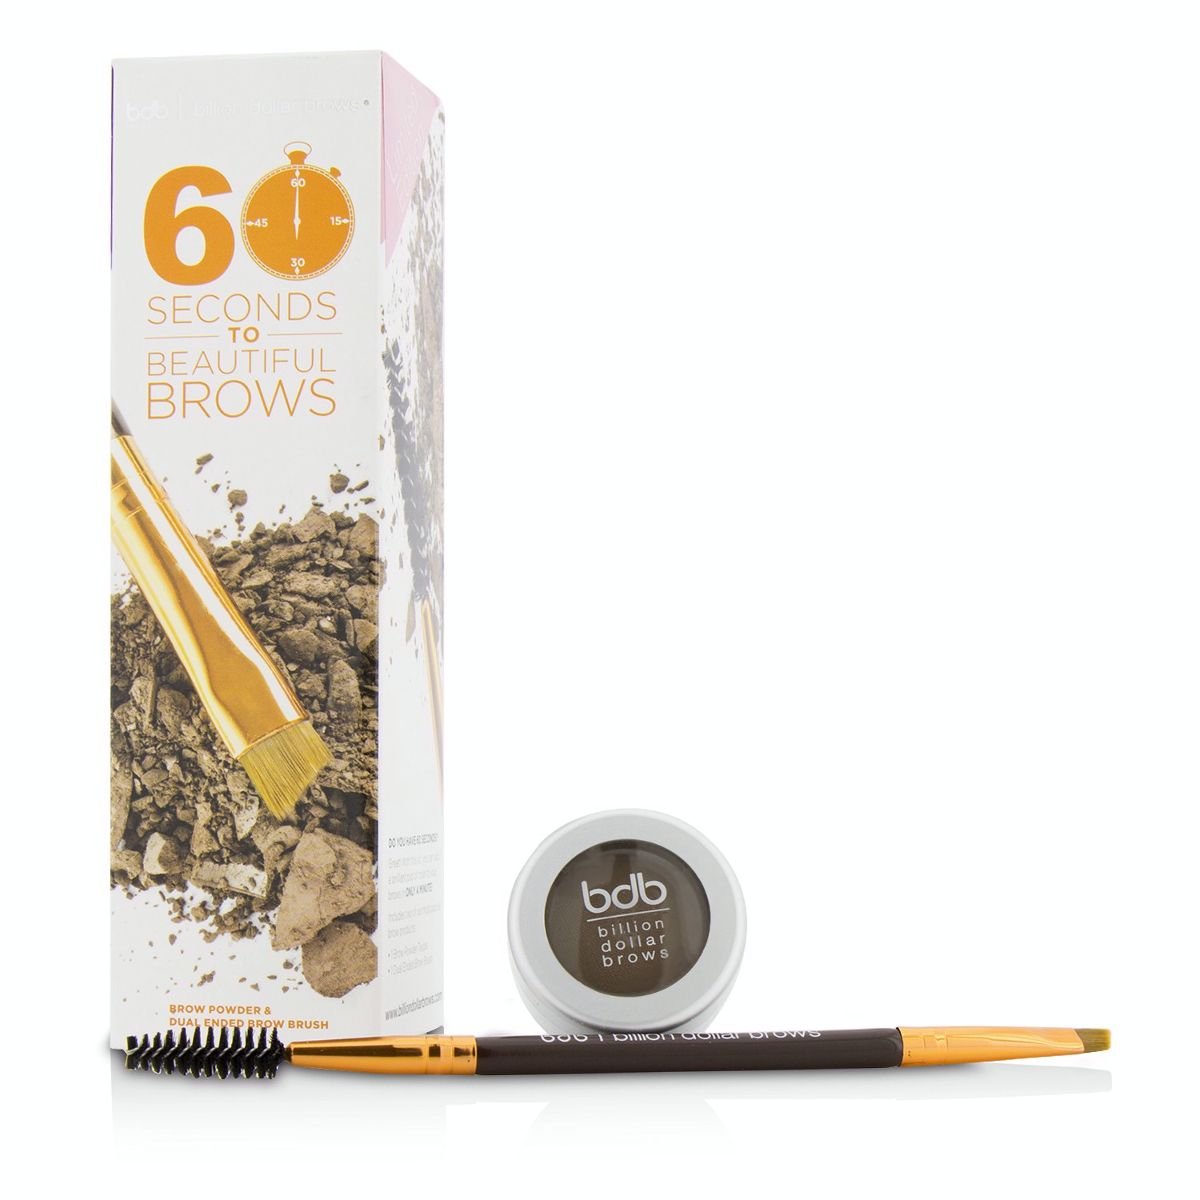 60 Seconds To Beautiful Brows Kit (1x Brow Powder 1x Dual Ended Brow Brush) - Taupe Billion Dollar Brows Image